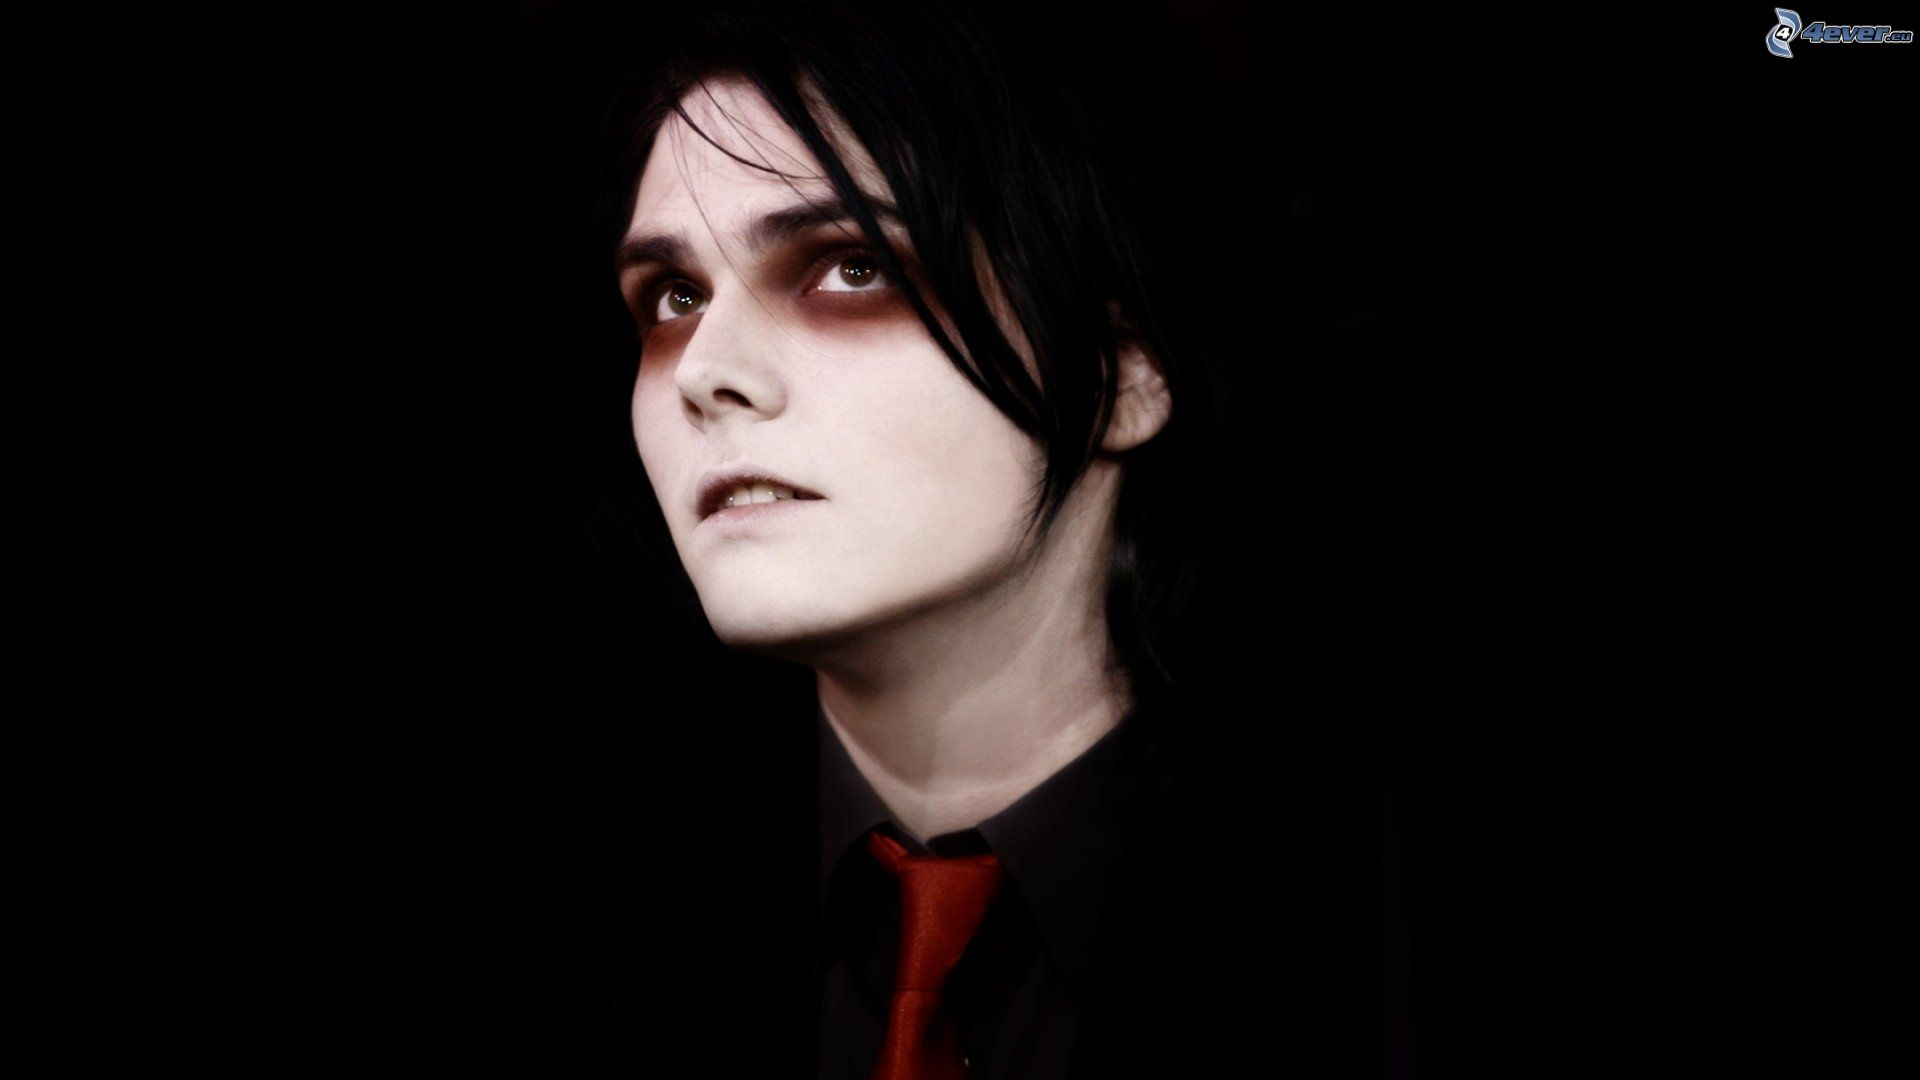 gerard-way-Gerard-Way-wallpaper-wp3406213